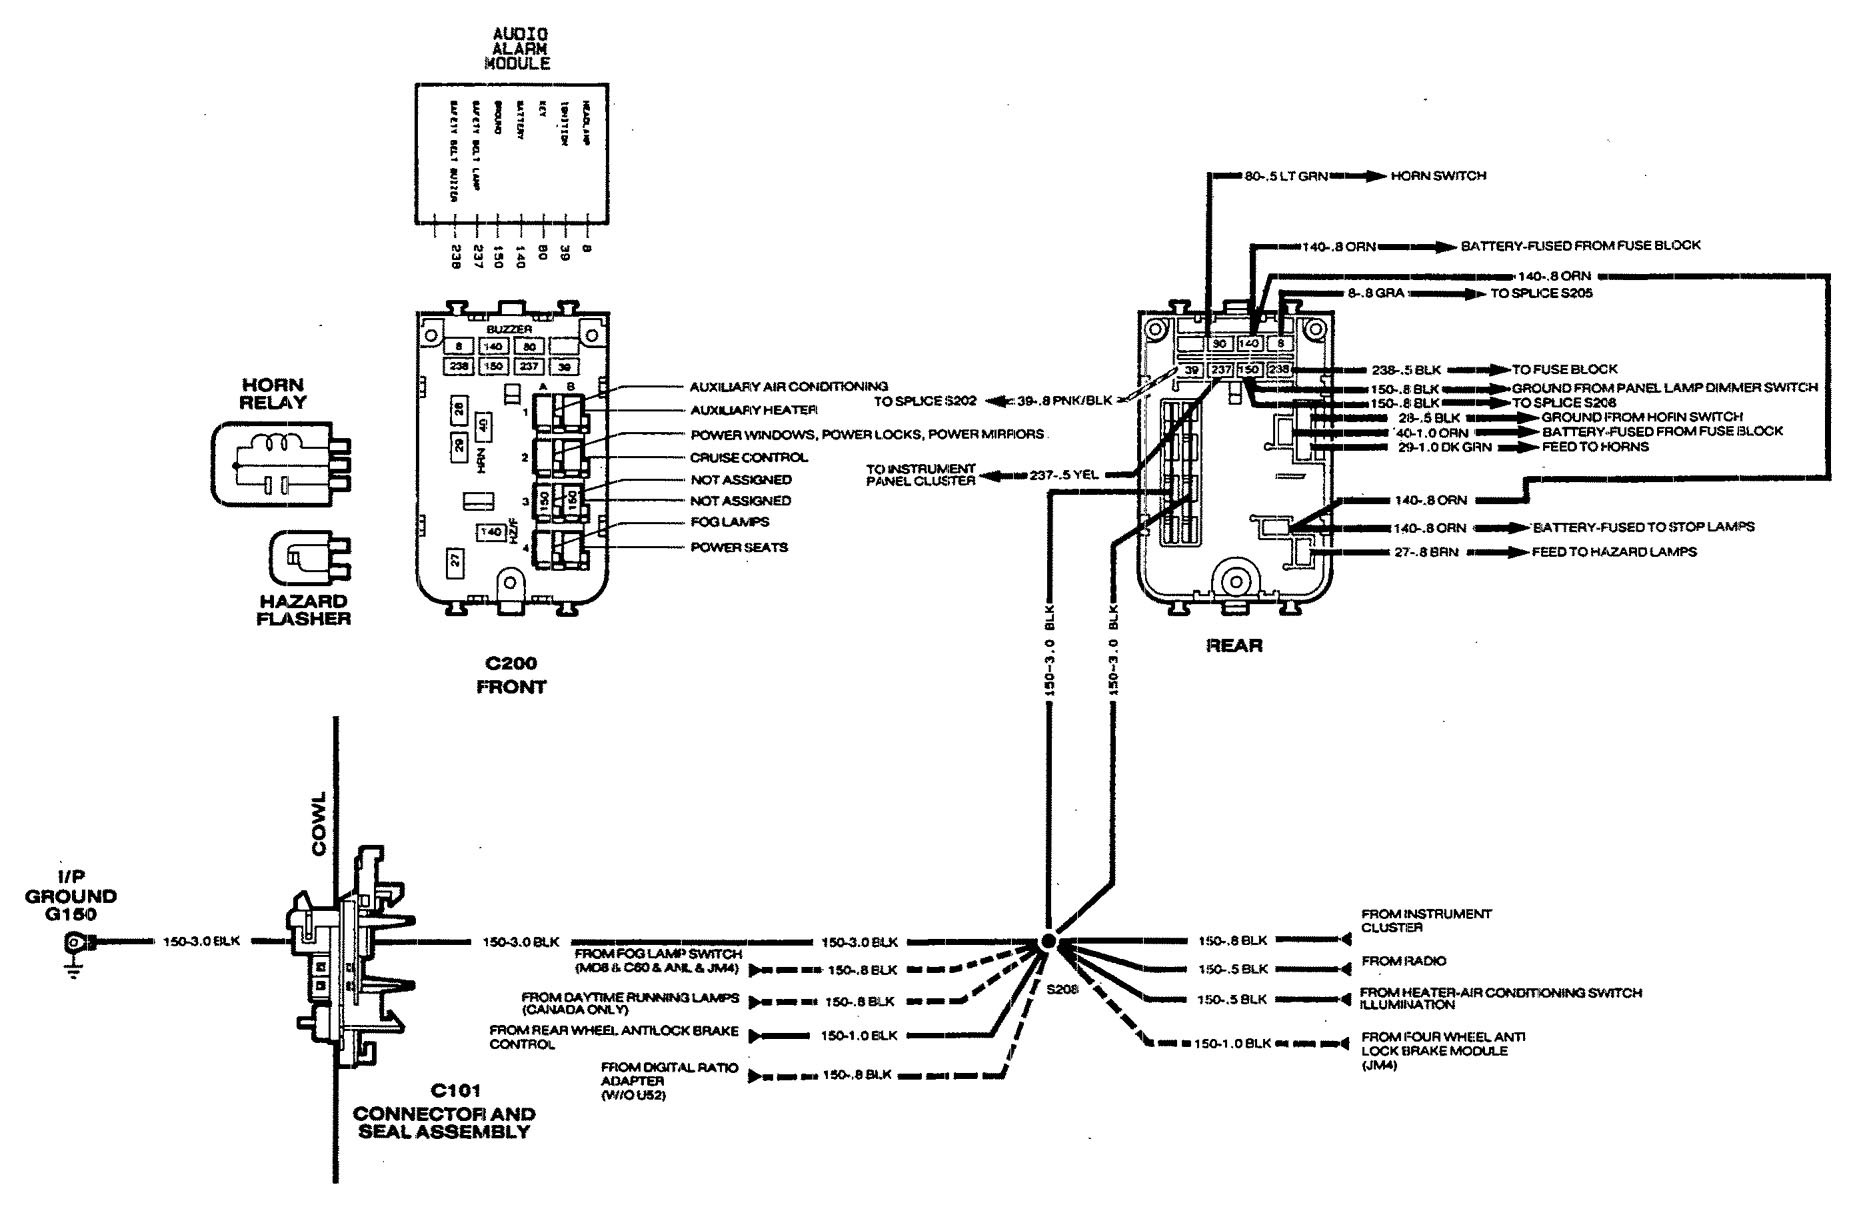 96 bounder wiring diagram 1990 bounder wiring diagram wiring diagram data  1990 bounder wiring diagram wiring